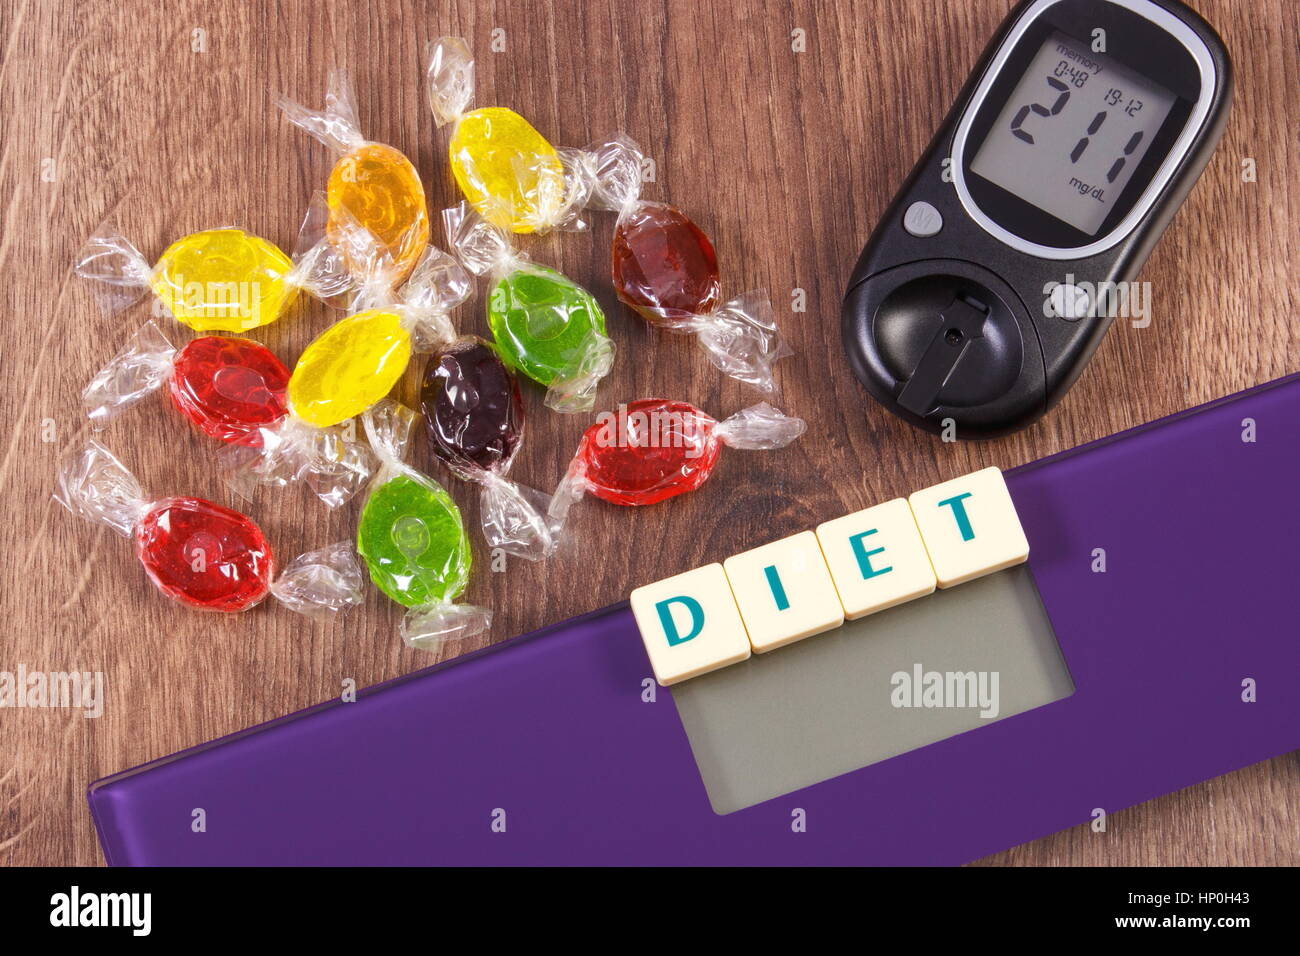 Electronic bathroom scale and glucose meter with high result of measurement sugar level and heap of colorful candies, - Stock Image